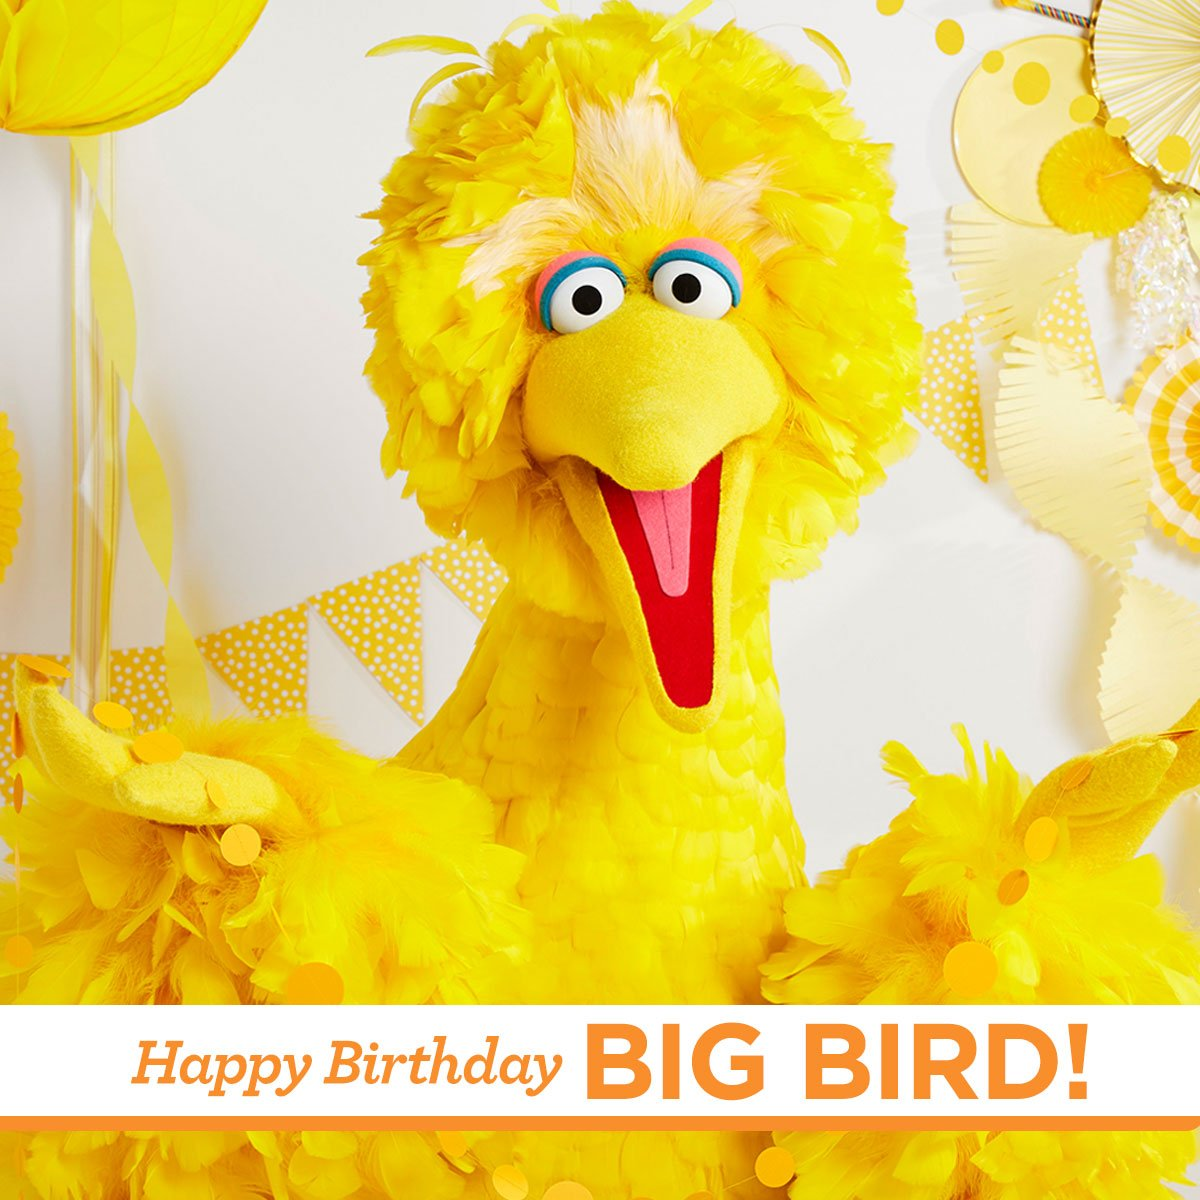 Today we are celebrating the kindest and happiest bird on Sesame Street, @BigBird! We are so lucky to have a friend like you! #HappyBirthdayBigBird <br>http://pic.twitter.com/M2oWTNXhIm